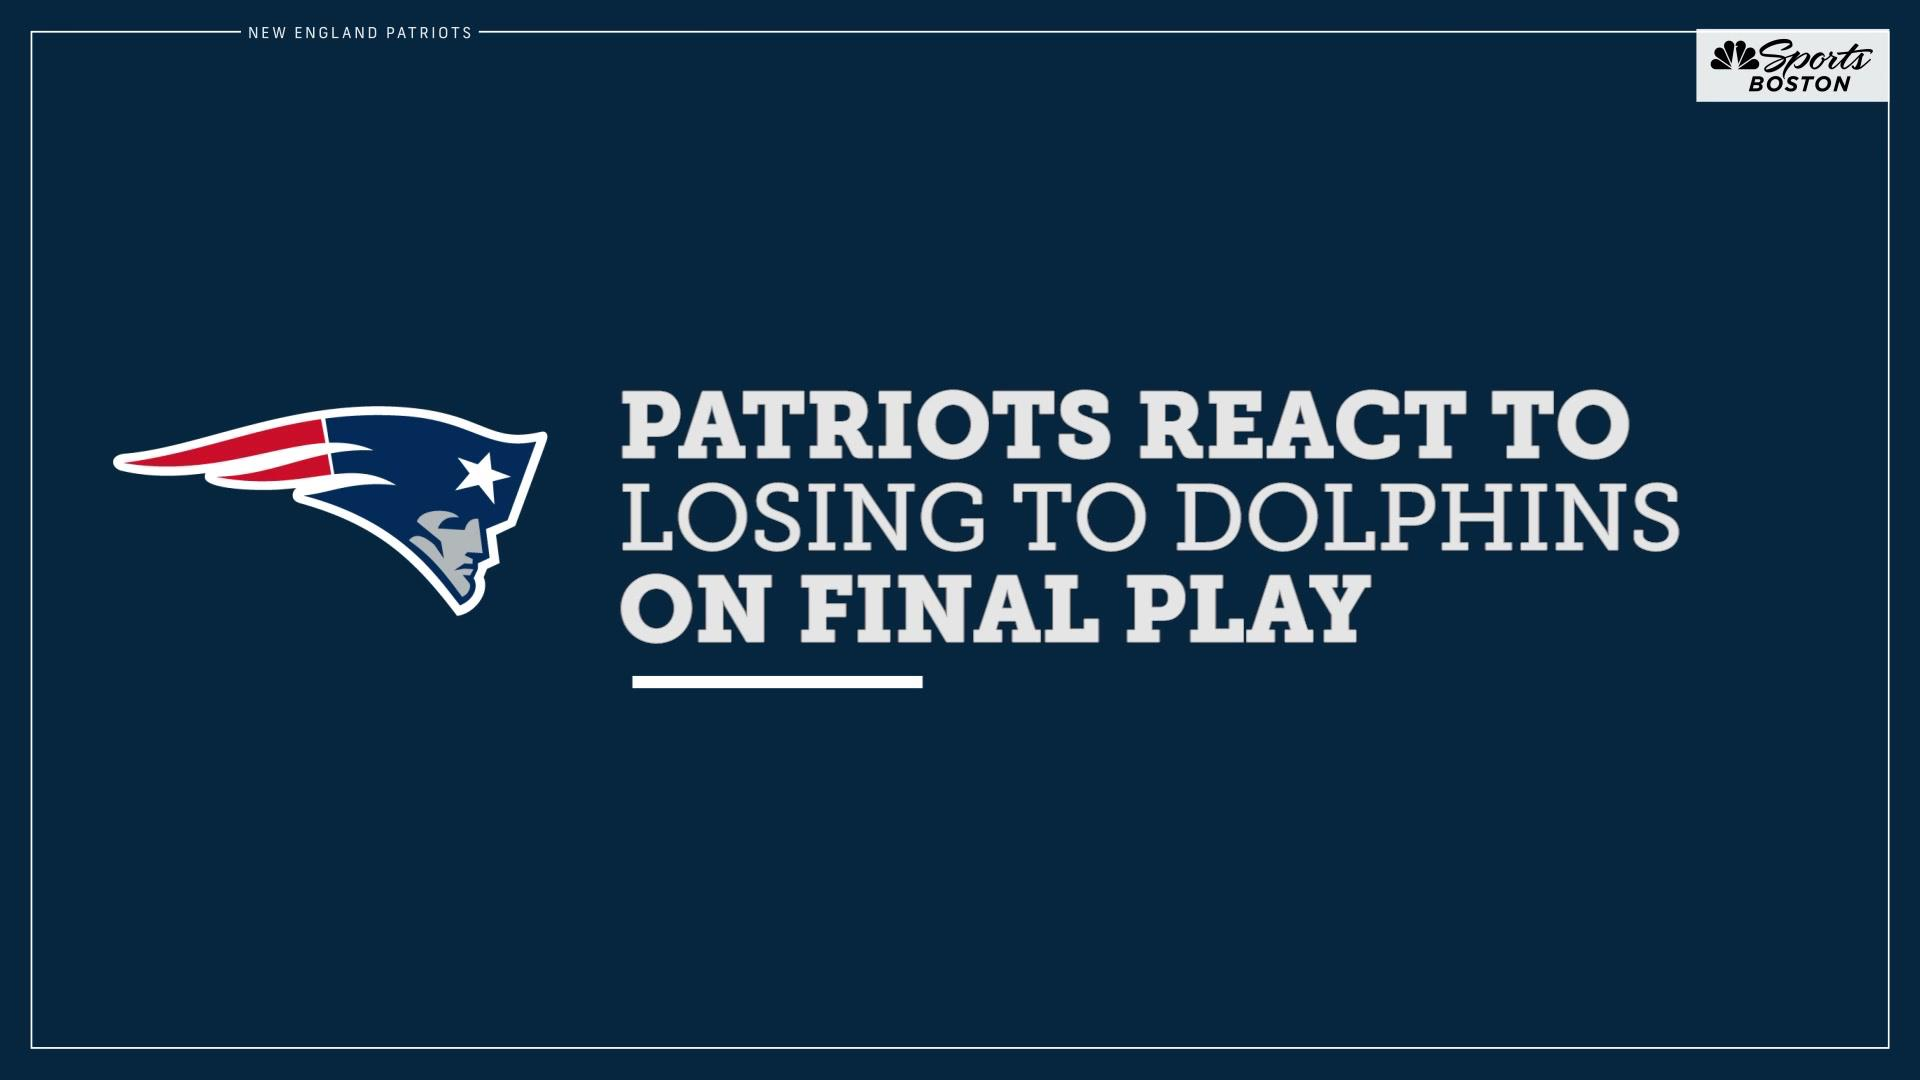 Patriots players react to heartbreaking loss to Dolphins